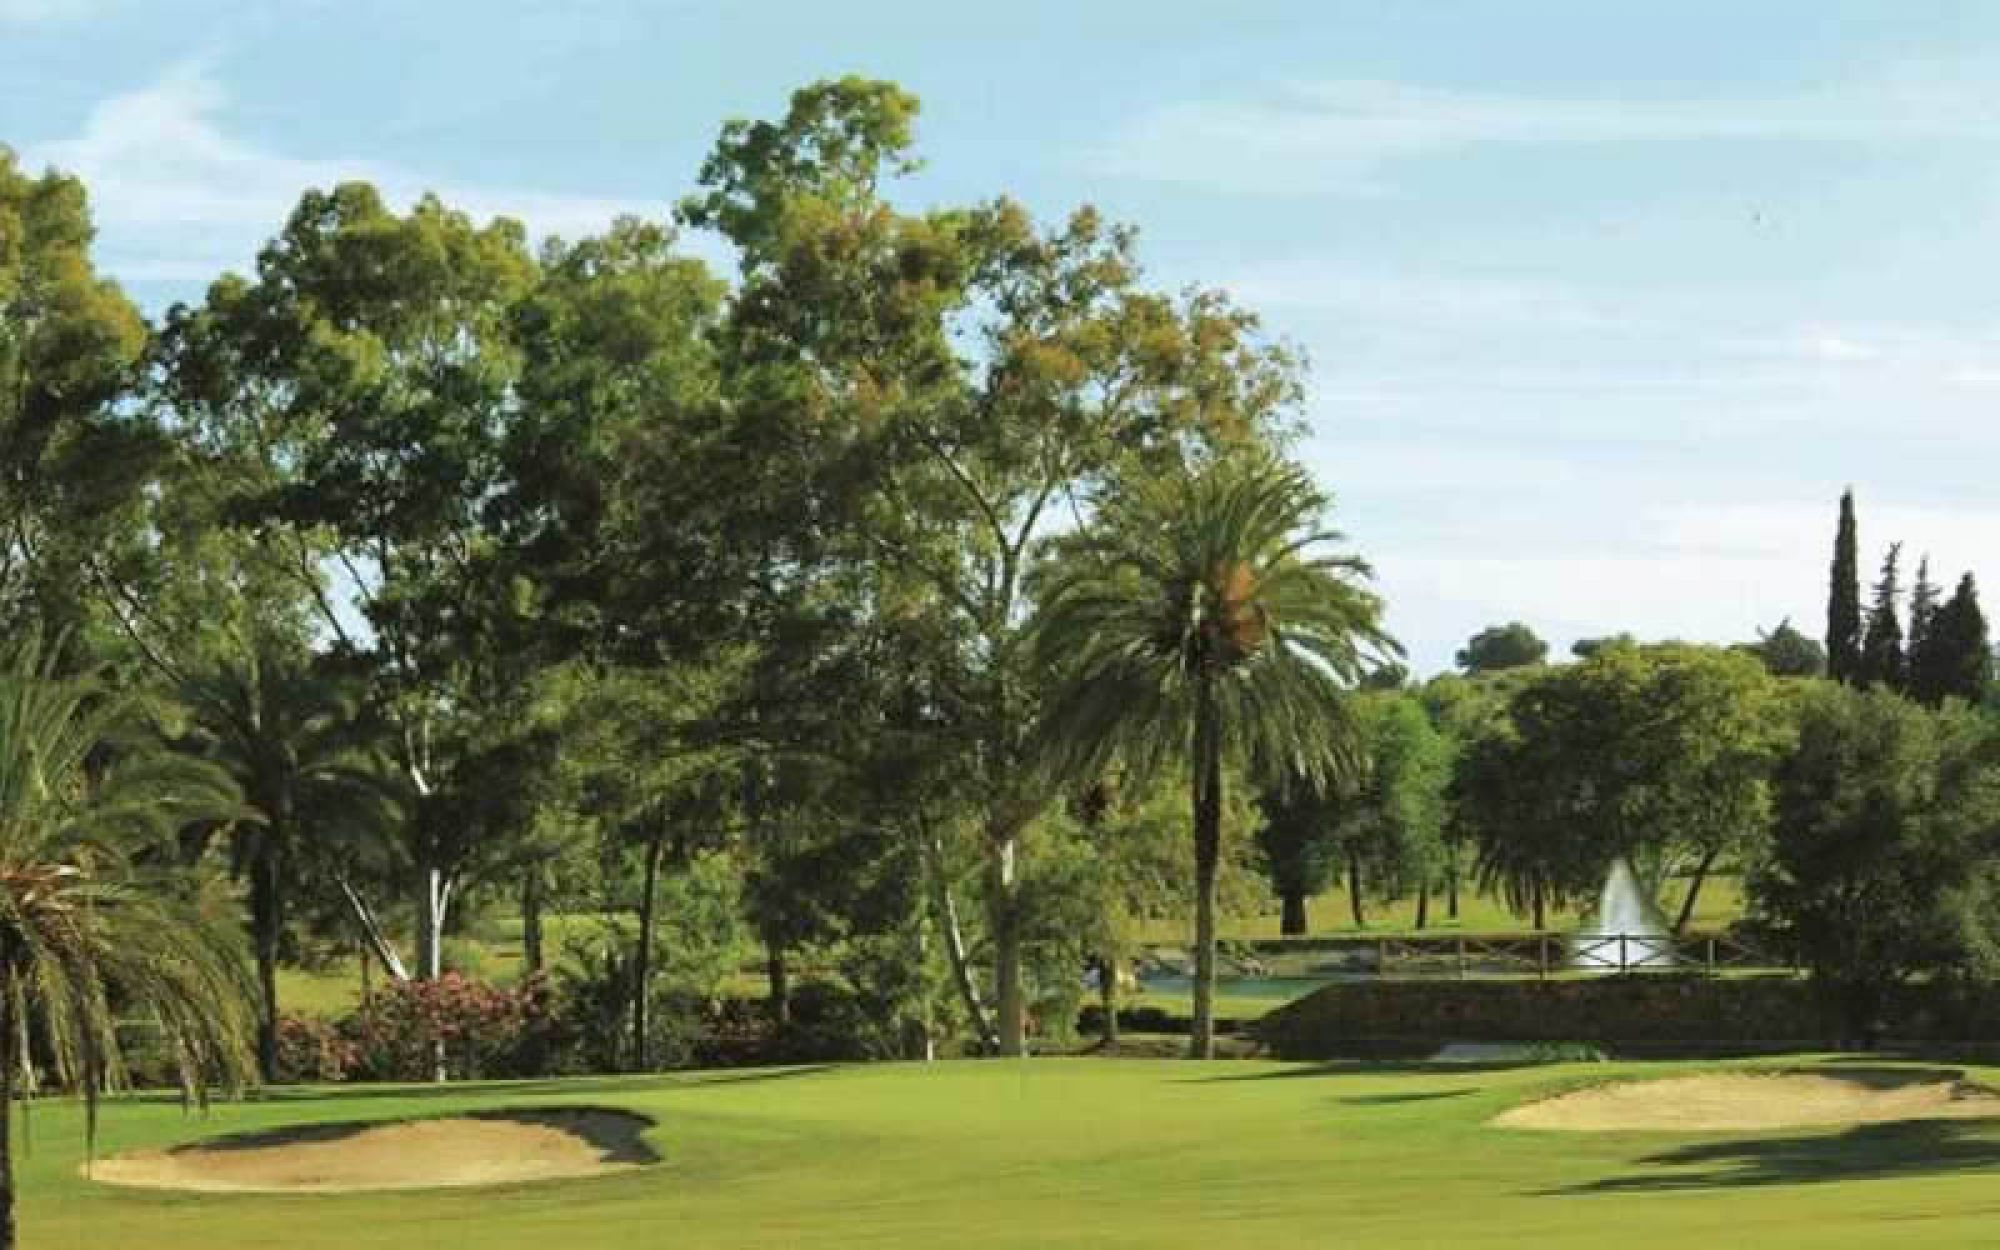 El Paraiso Golf Club includes among the most popular golf course within Costa Del Sol